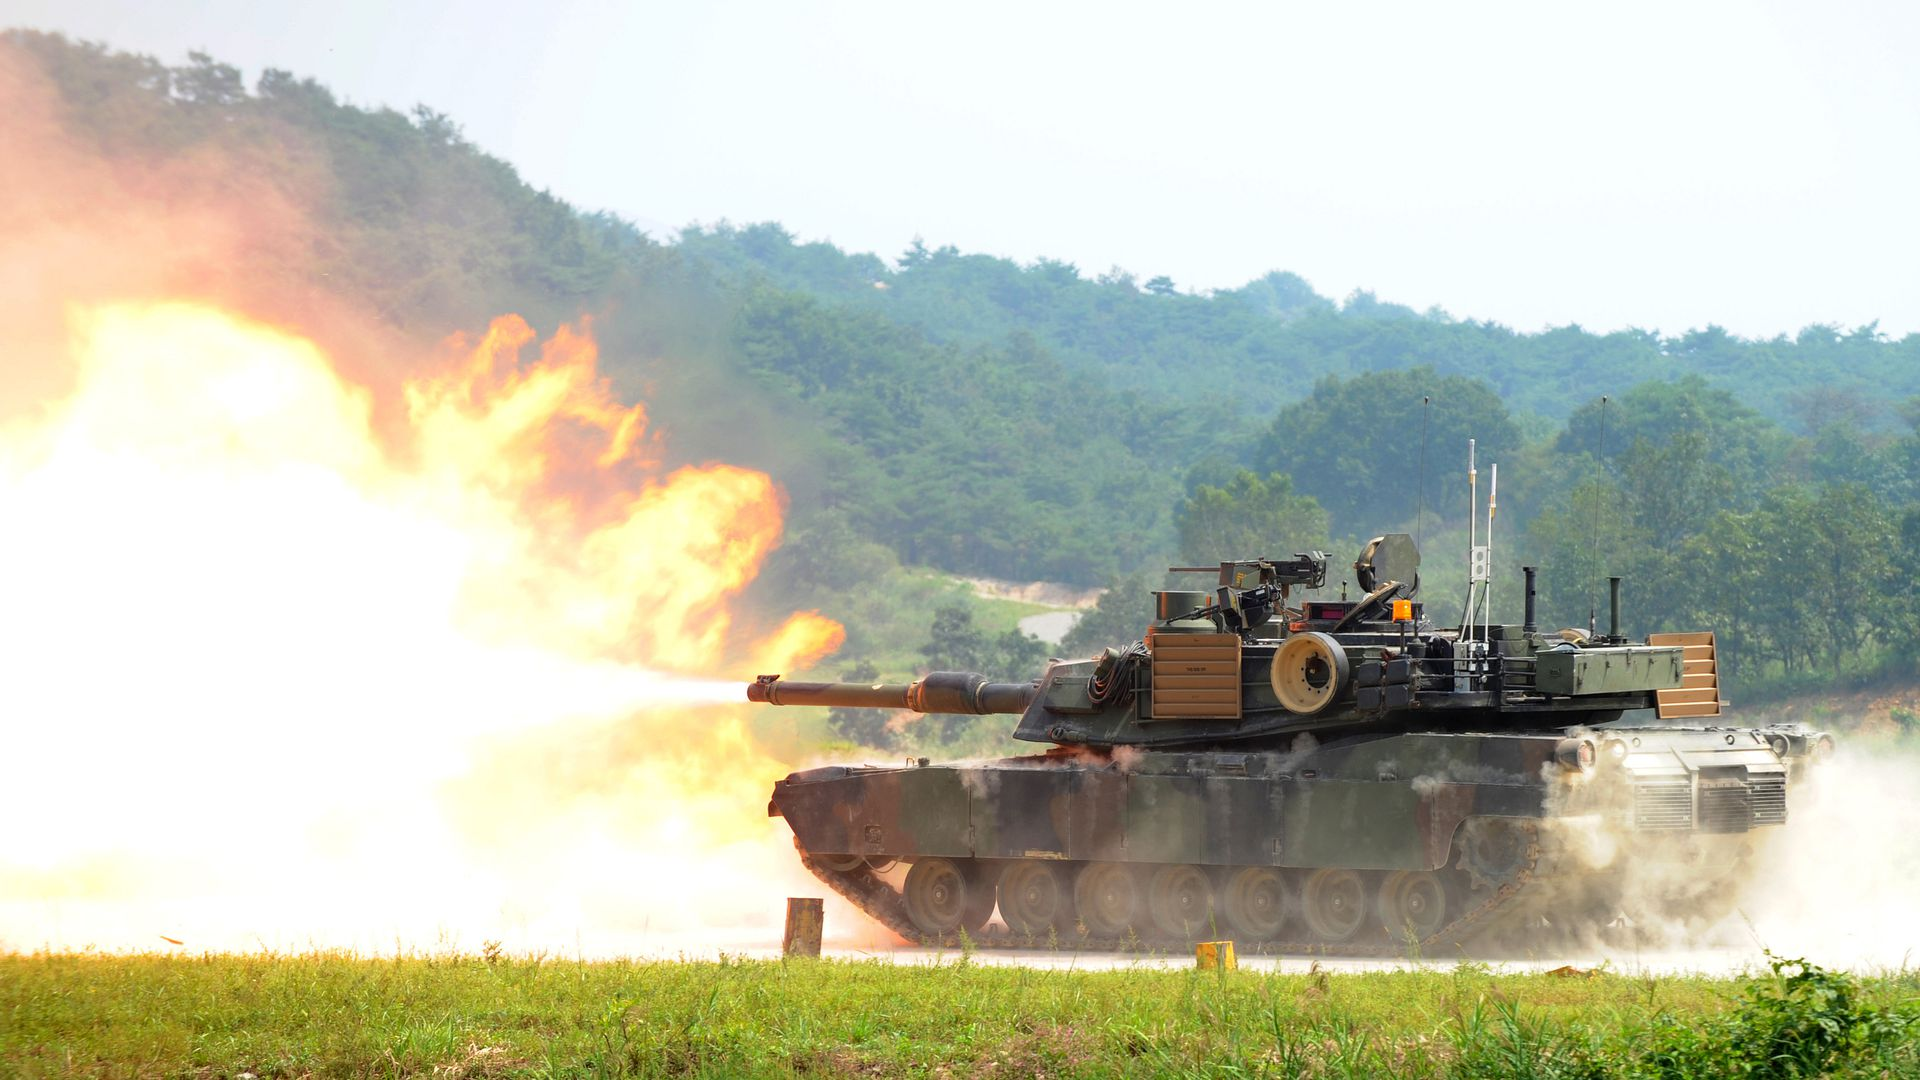 A US M1A2 SEP Abrams battle tank fires live rounds at the US Army's Rodriguez Live Firing Range in Pocheon,about 15 km south of the demilitarized zone separating the two Koreas, on September 1, 2011.